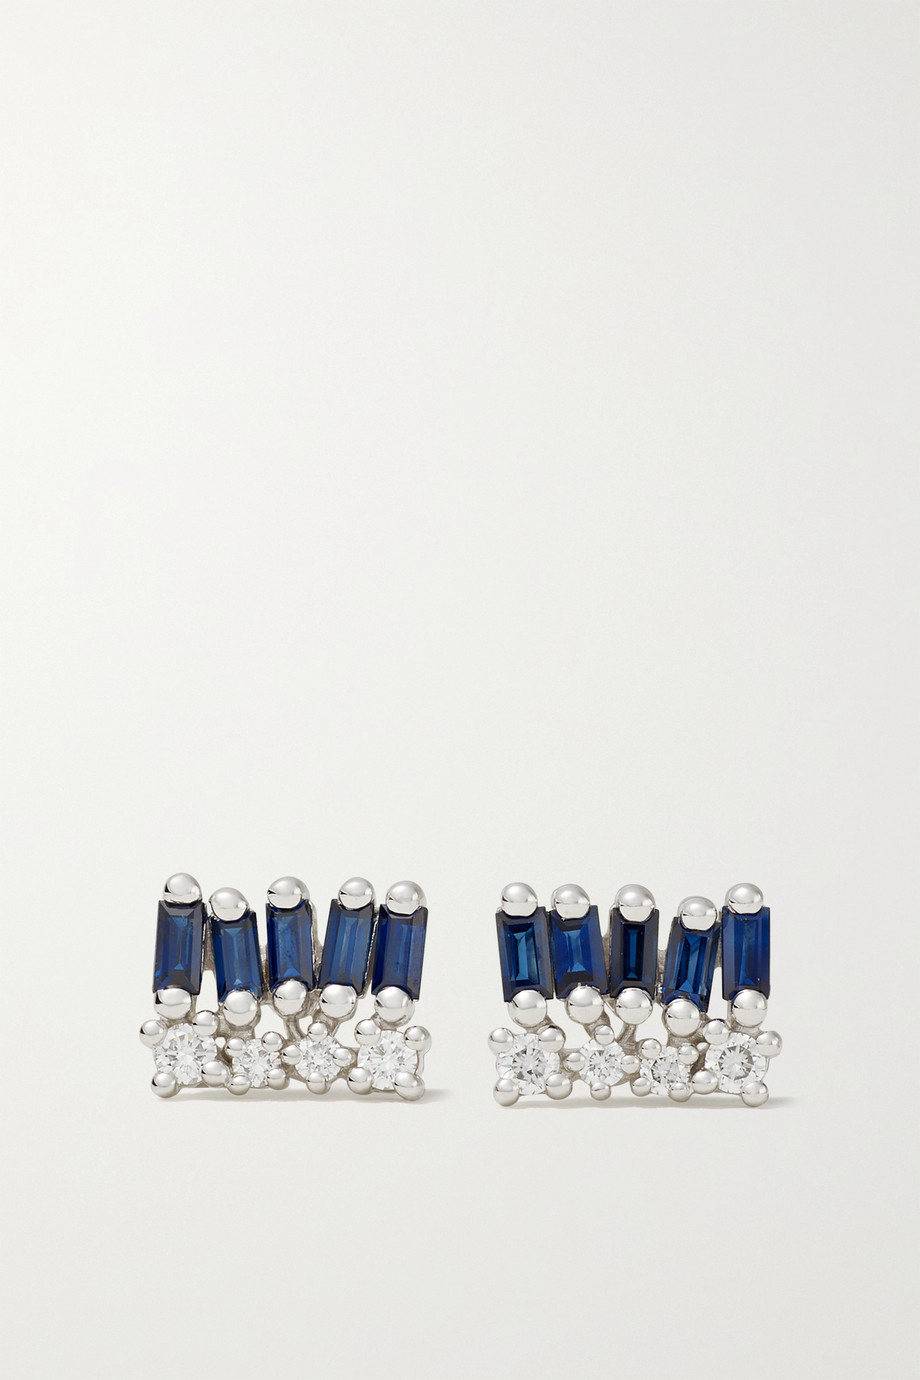 SUZANNE KALAN 18-karat white gold, sapphire and diamond earrings